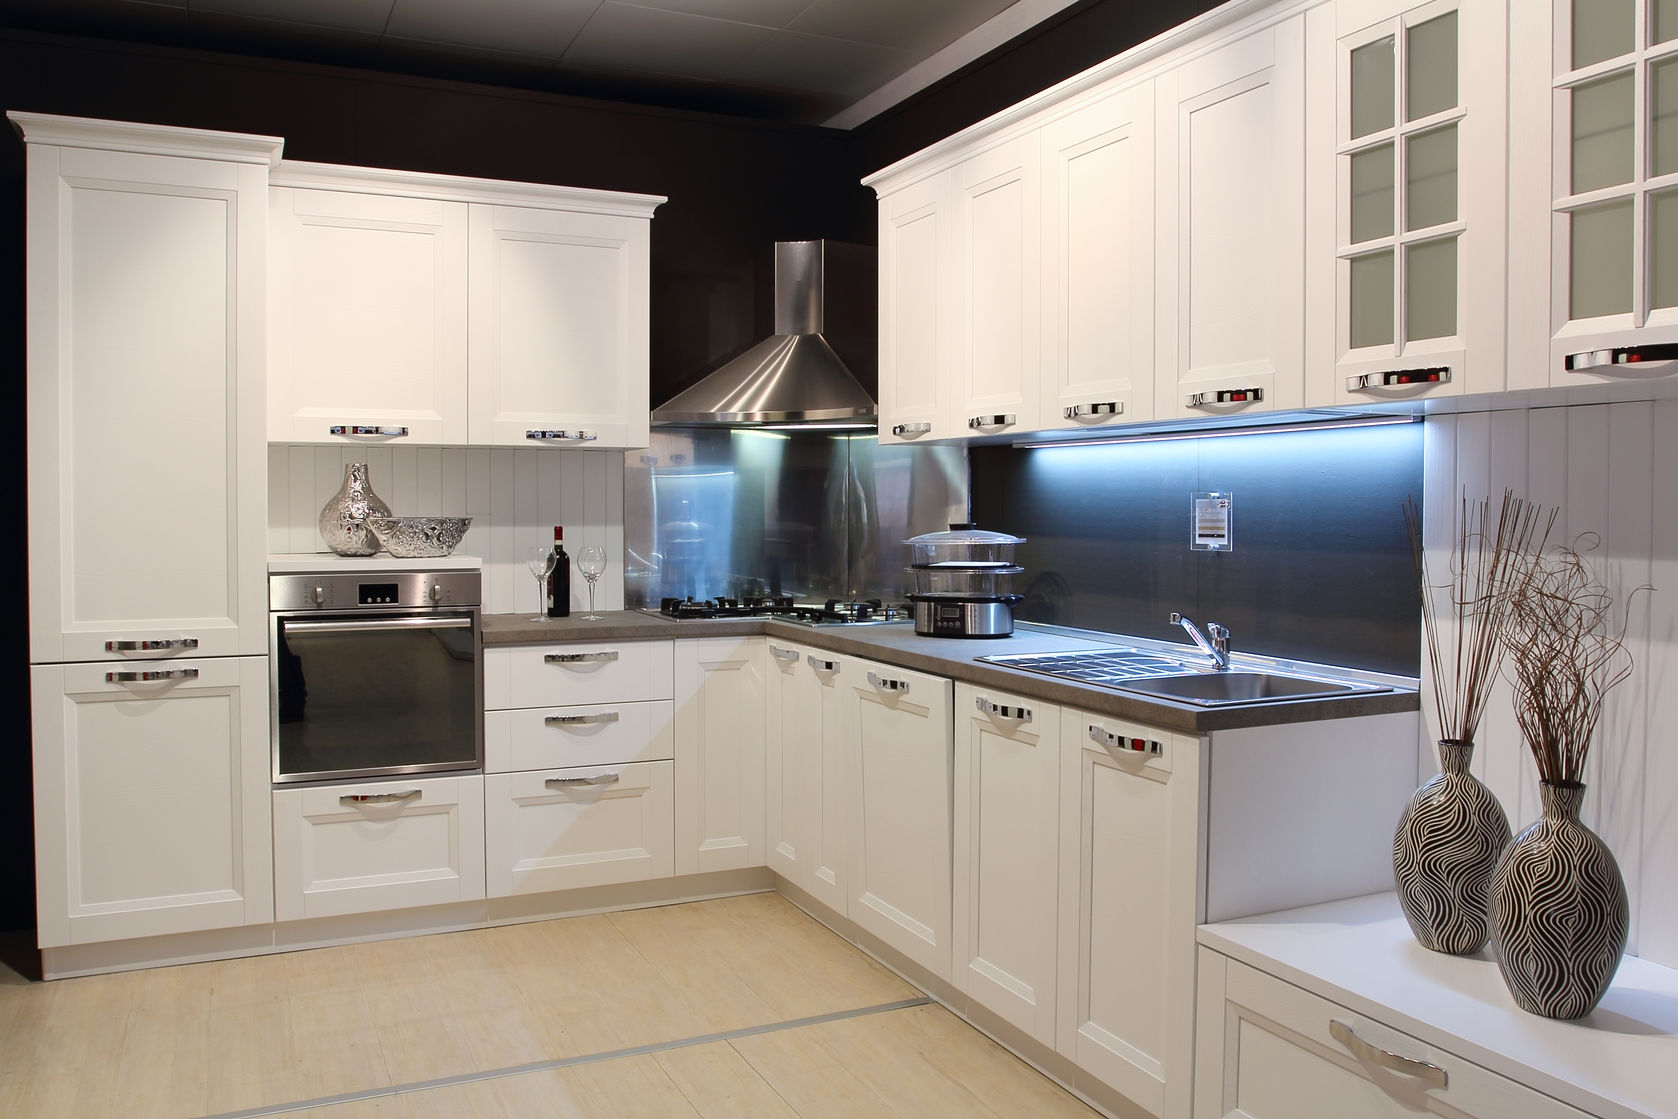 27160130 ml - Three Latest Kitchen Trends You Need to See